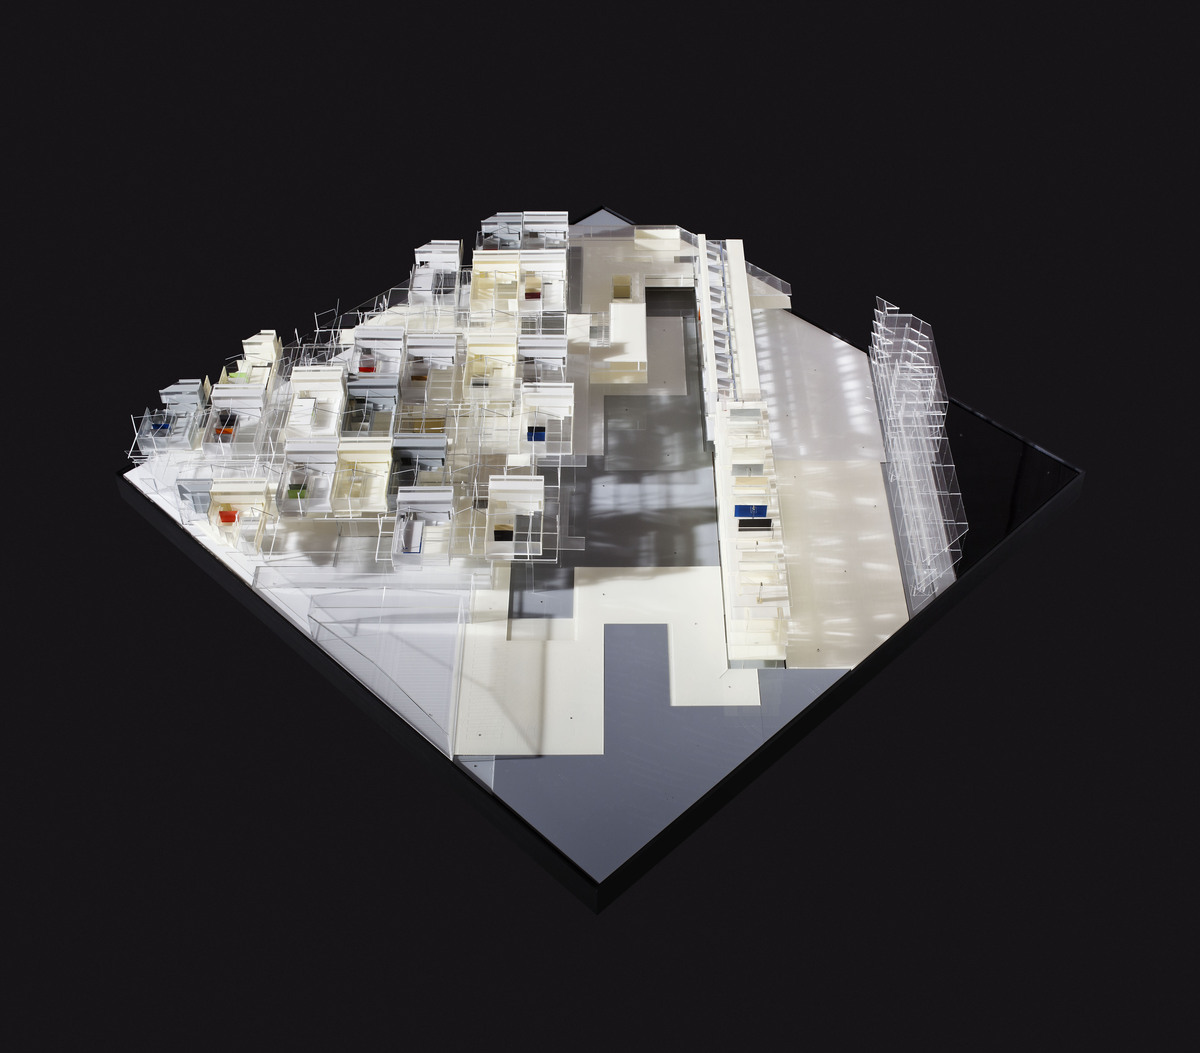 Architectural model, plan view, for Visible Weather's Simultaneous City project for Temple Terrace, Florida. Photograph courtesy of James Ewing. © 2011 James Ewing